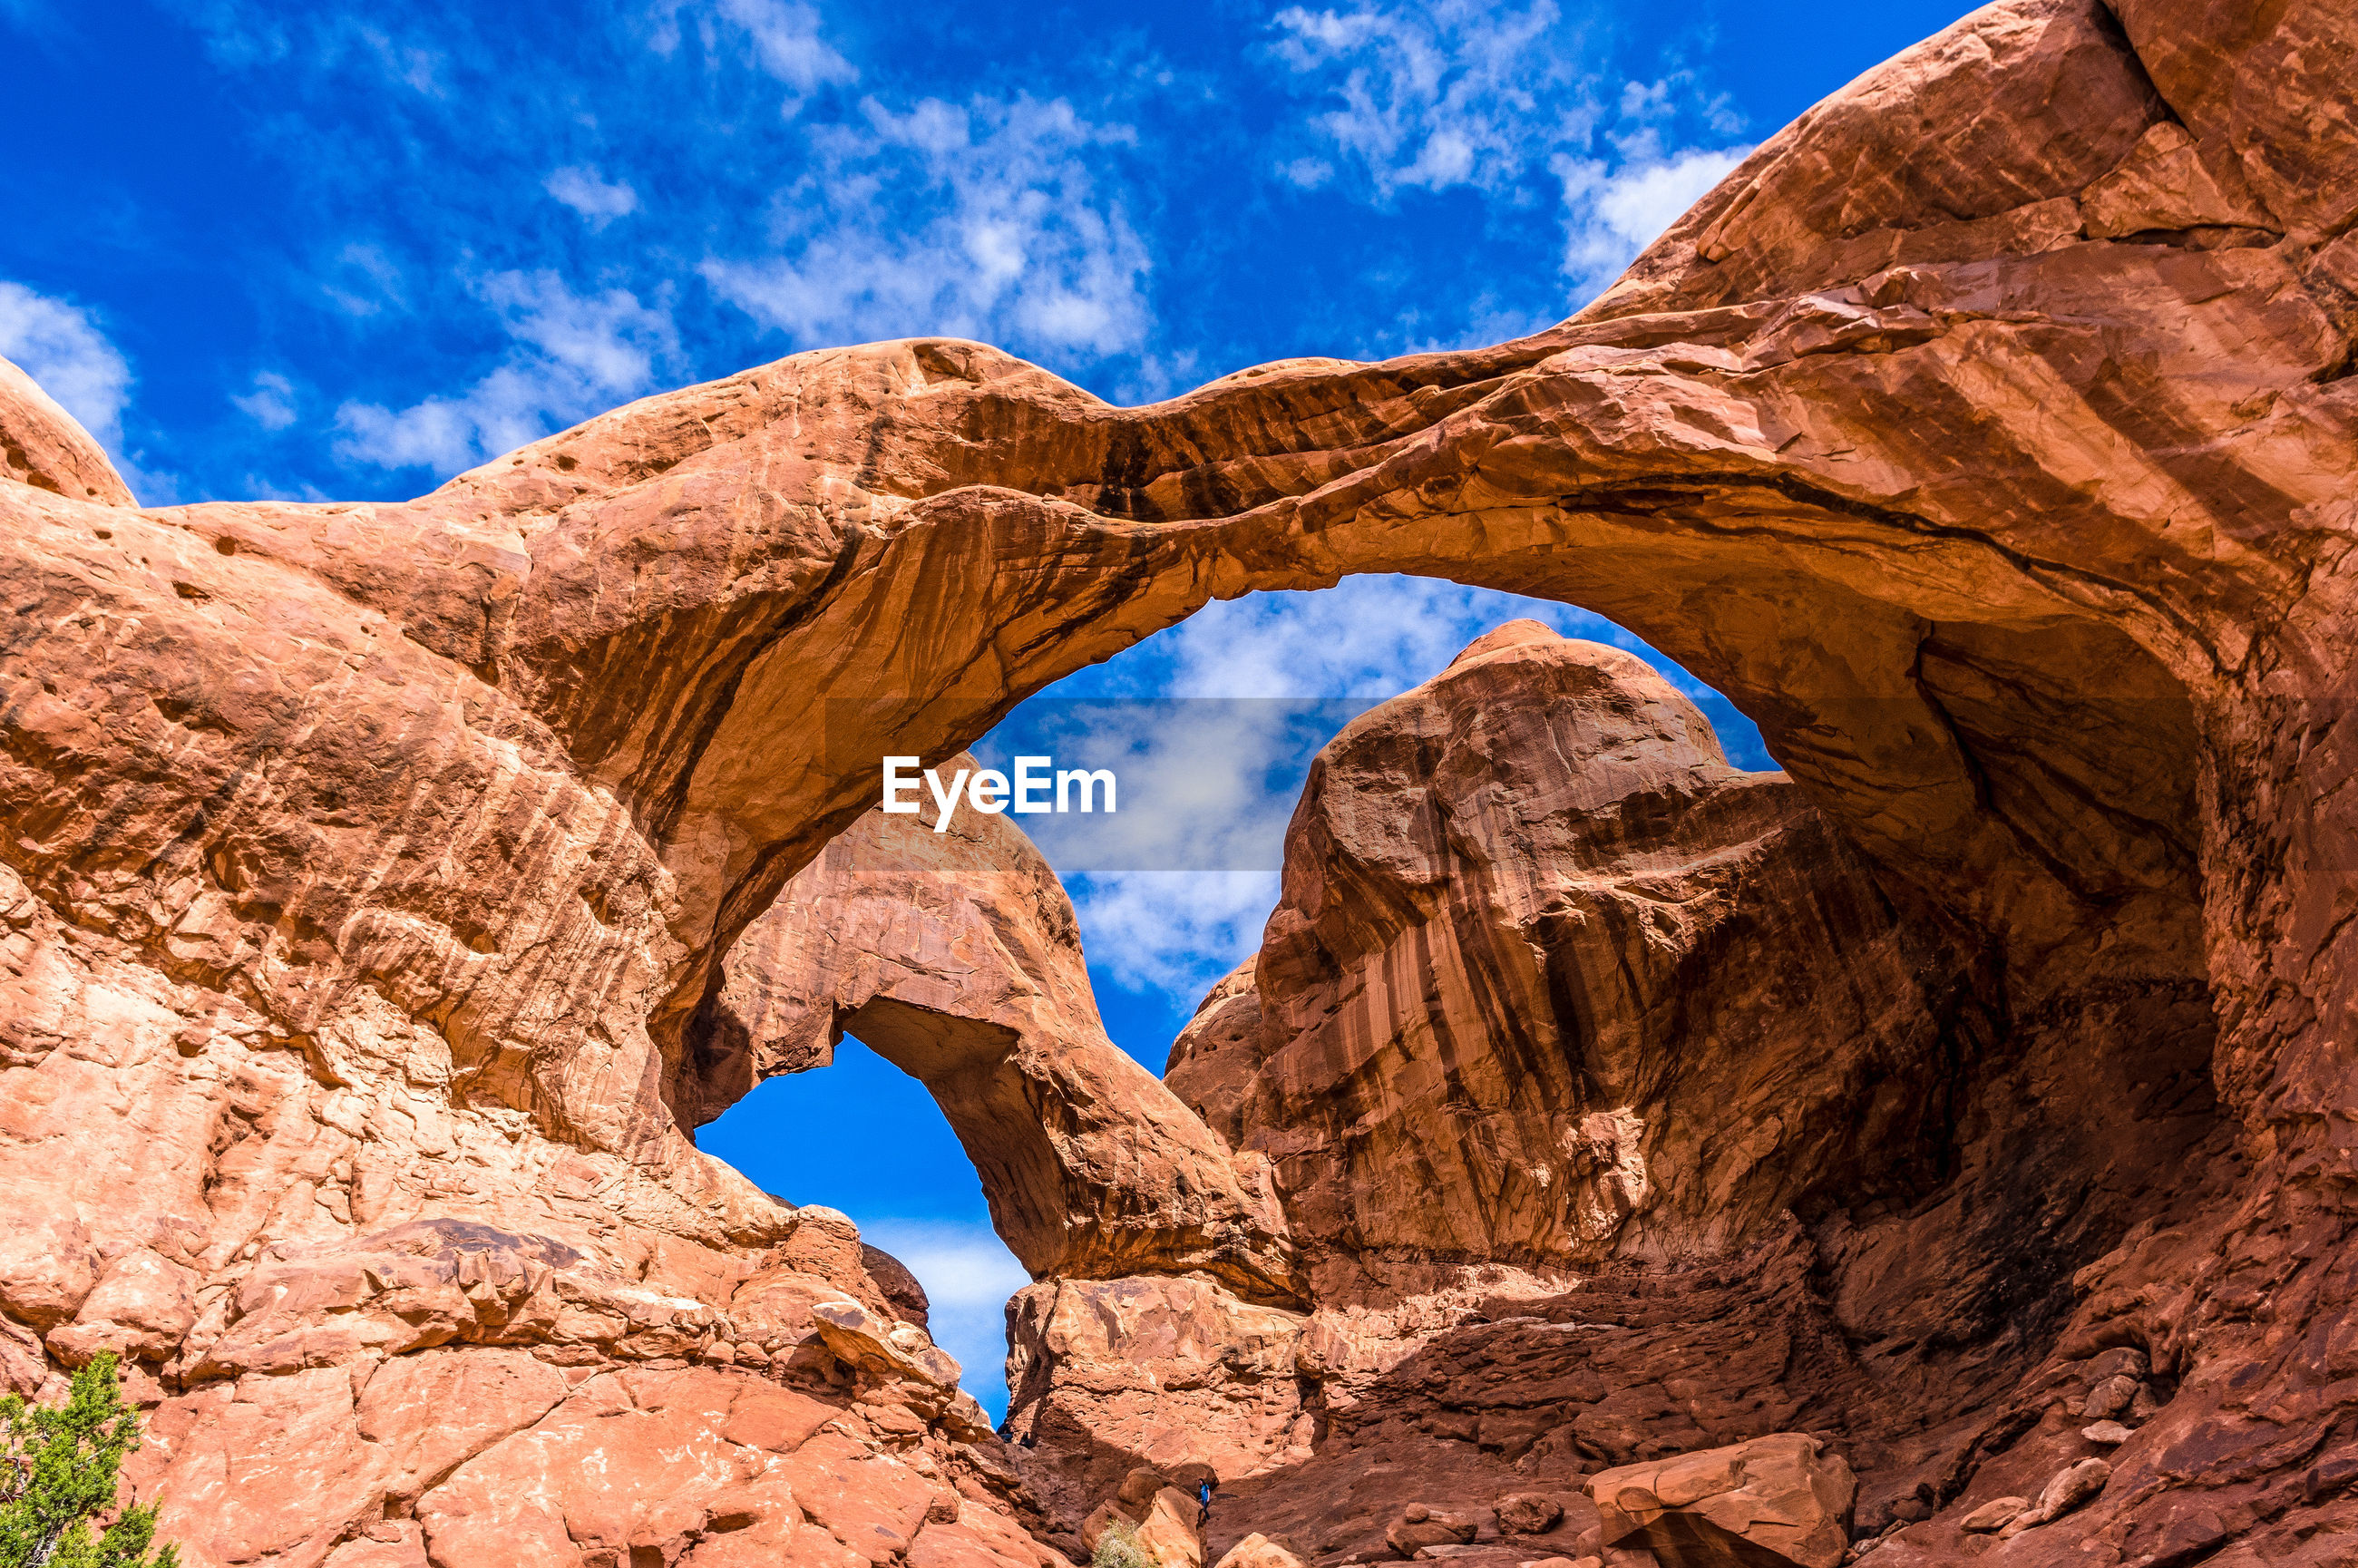 Low angle view of rock formation in desert against blue sky